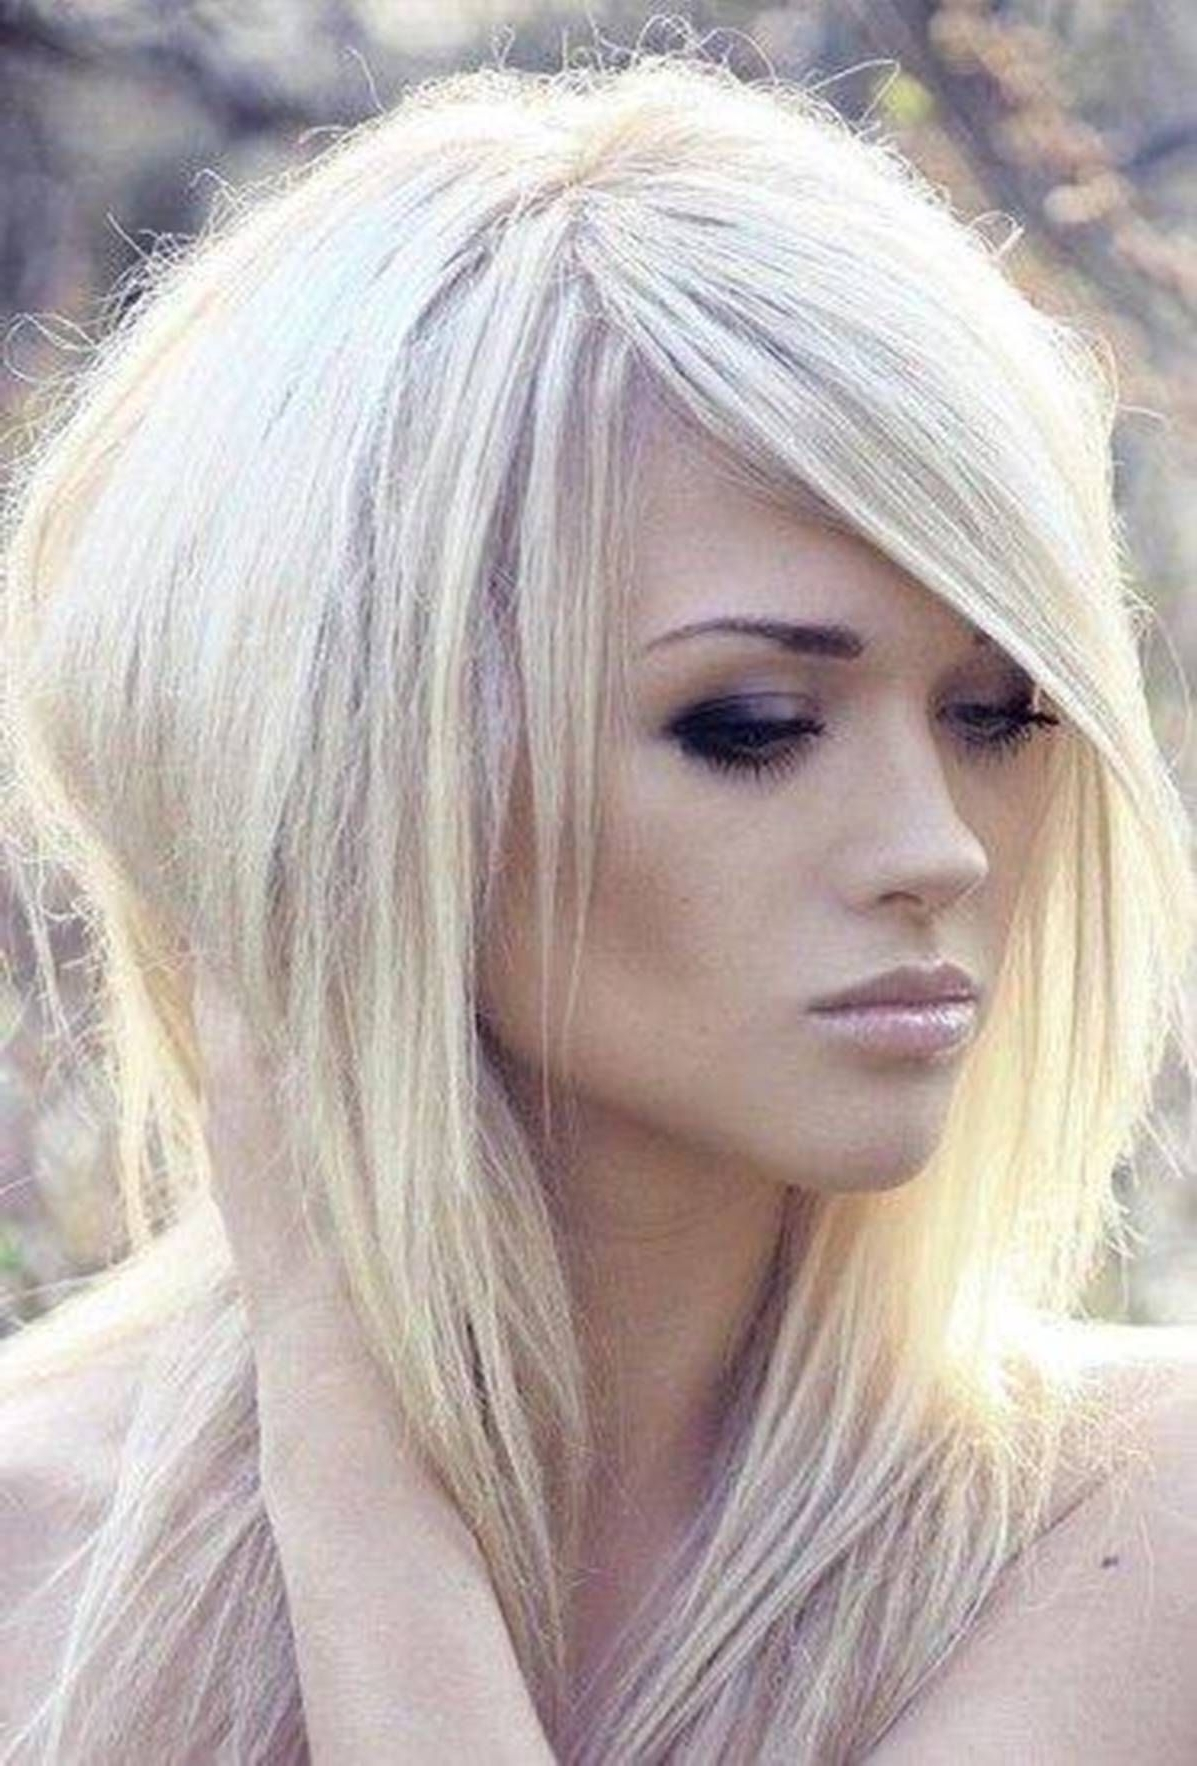 [%Best And Newest Shaggy Emo Hairstyles With Blonde Long Shag Hairstyles [ Waterbabiesbikini ] #beauty|Blonde Long Shag Hairstyles [ Waterbabiesbikini ] #beauty Intended For Newest Shaggy Emo Hairstyles%] (View 1 of 15)